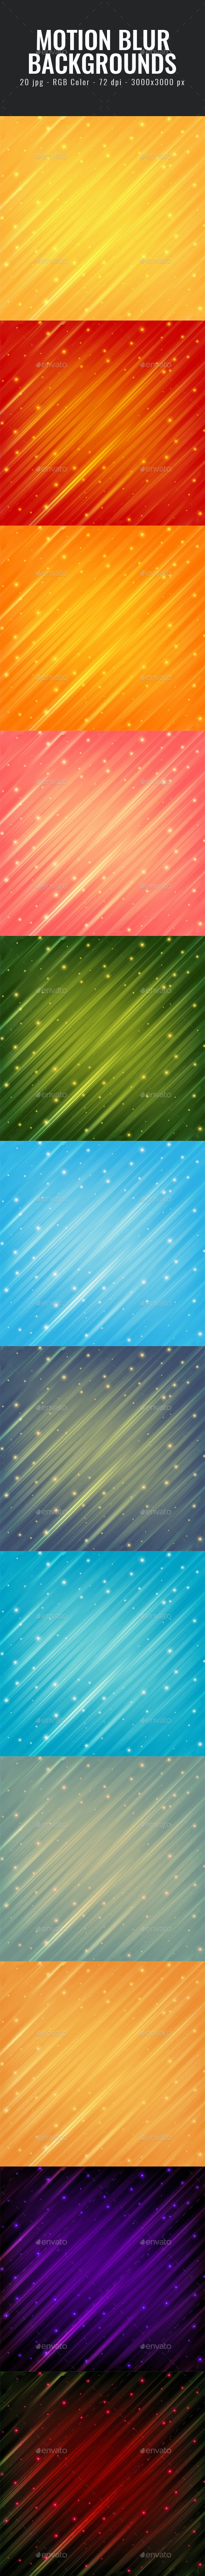 Motion Blur Backgrounds - Abstract Textures